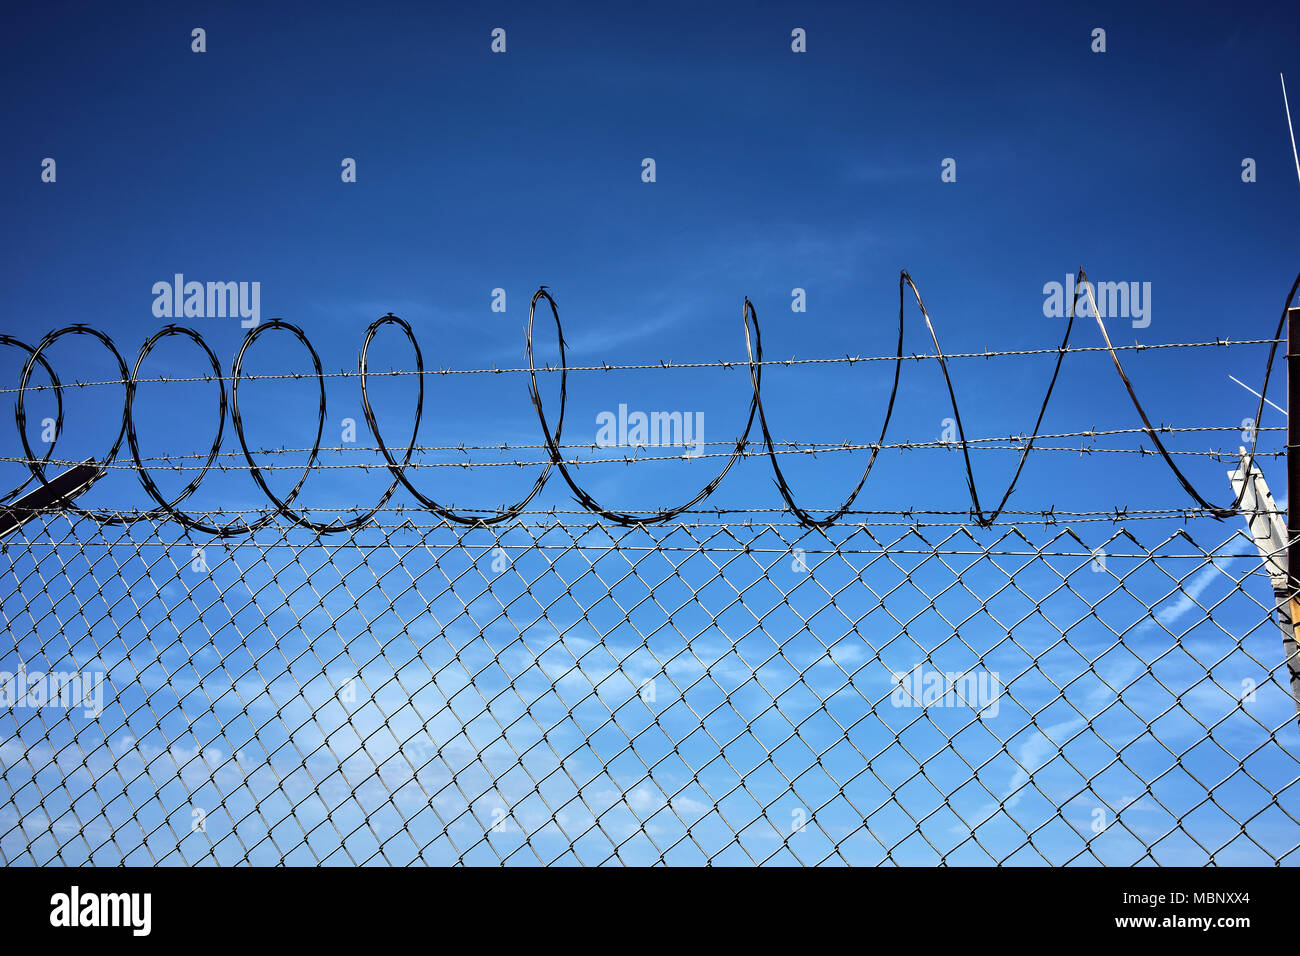 Fence Barbed Wire Silhouette Illustration Stock Photos & Fence ...